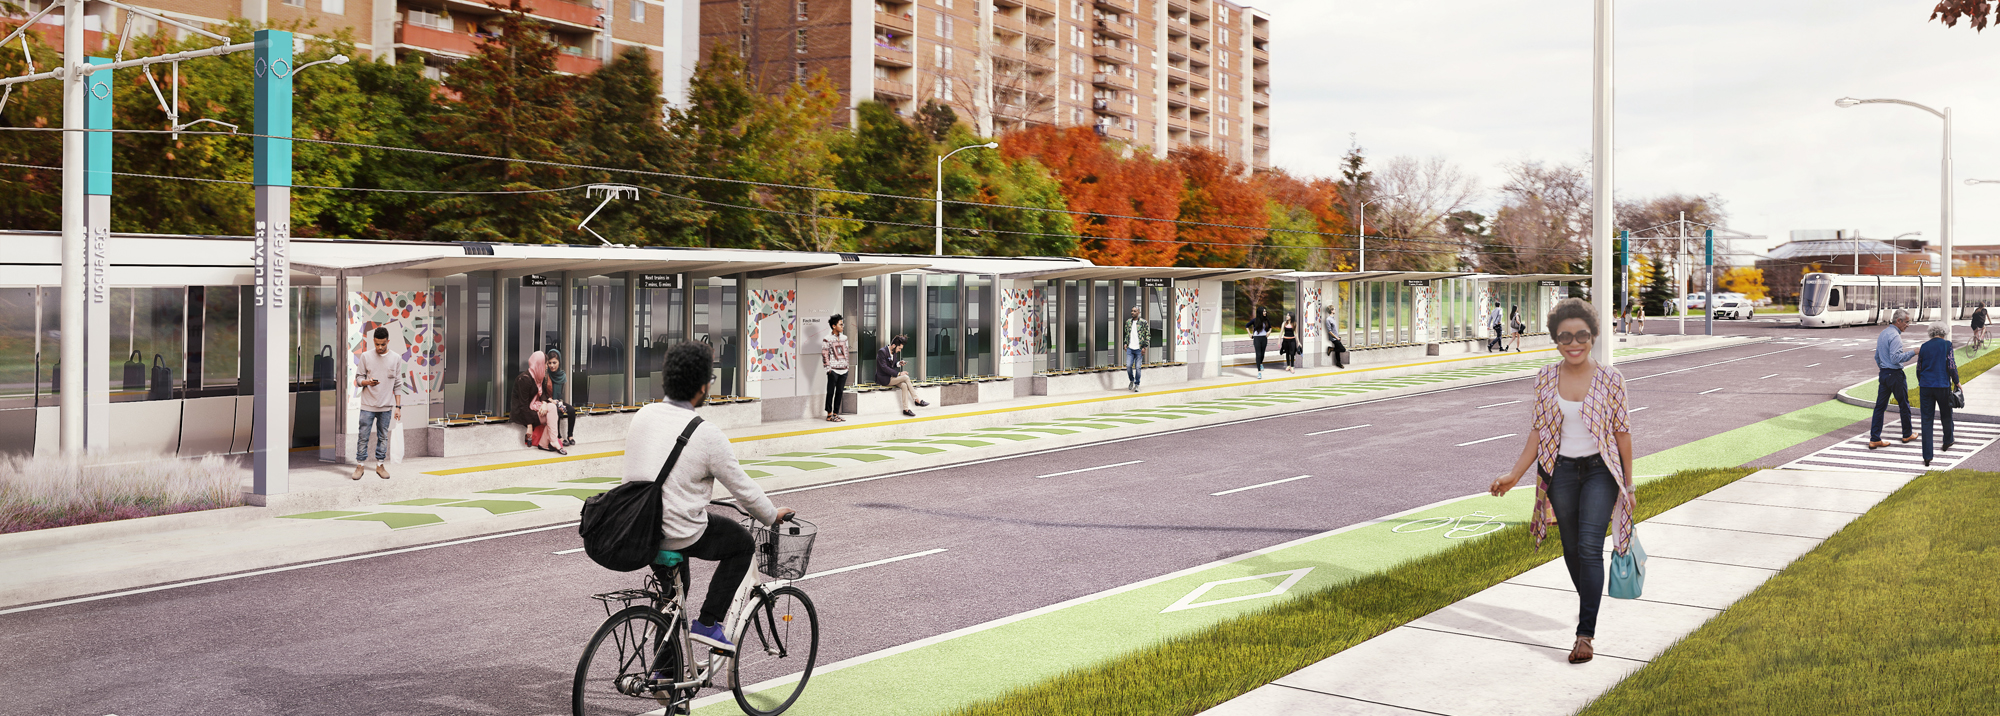 rendering of a station on Finch West LRT line